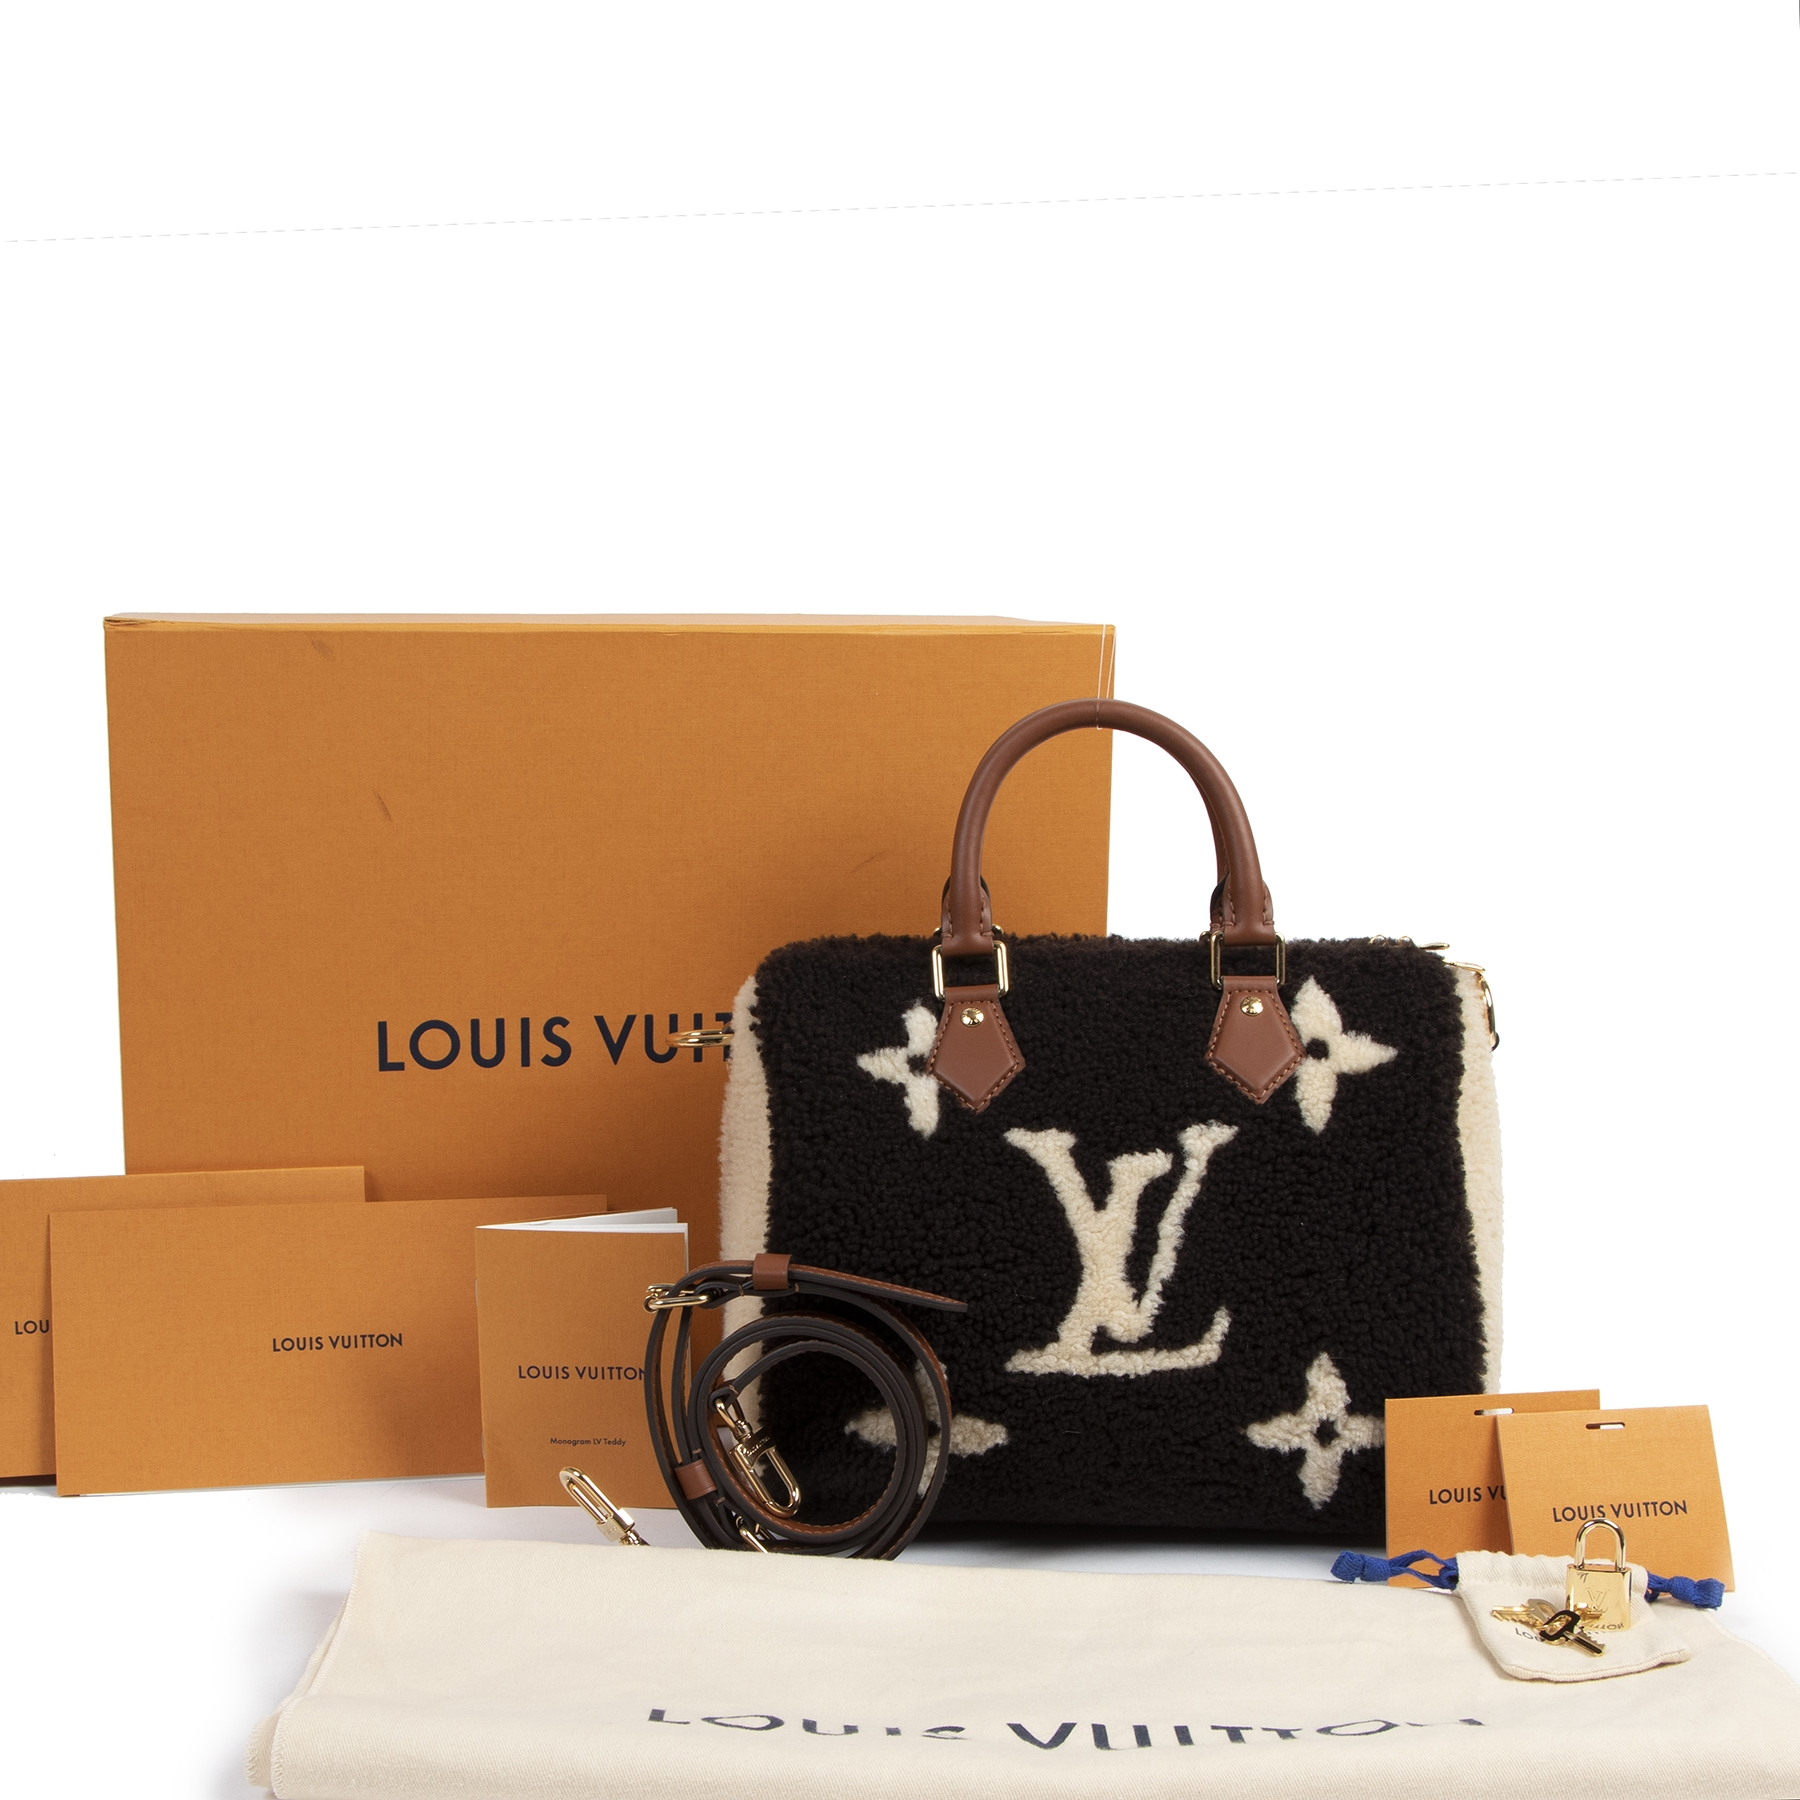 Louis Vuitton Limited Edition Speedy Bandoulière 25 LV Teddy Monogram